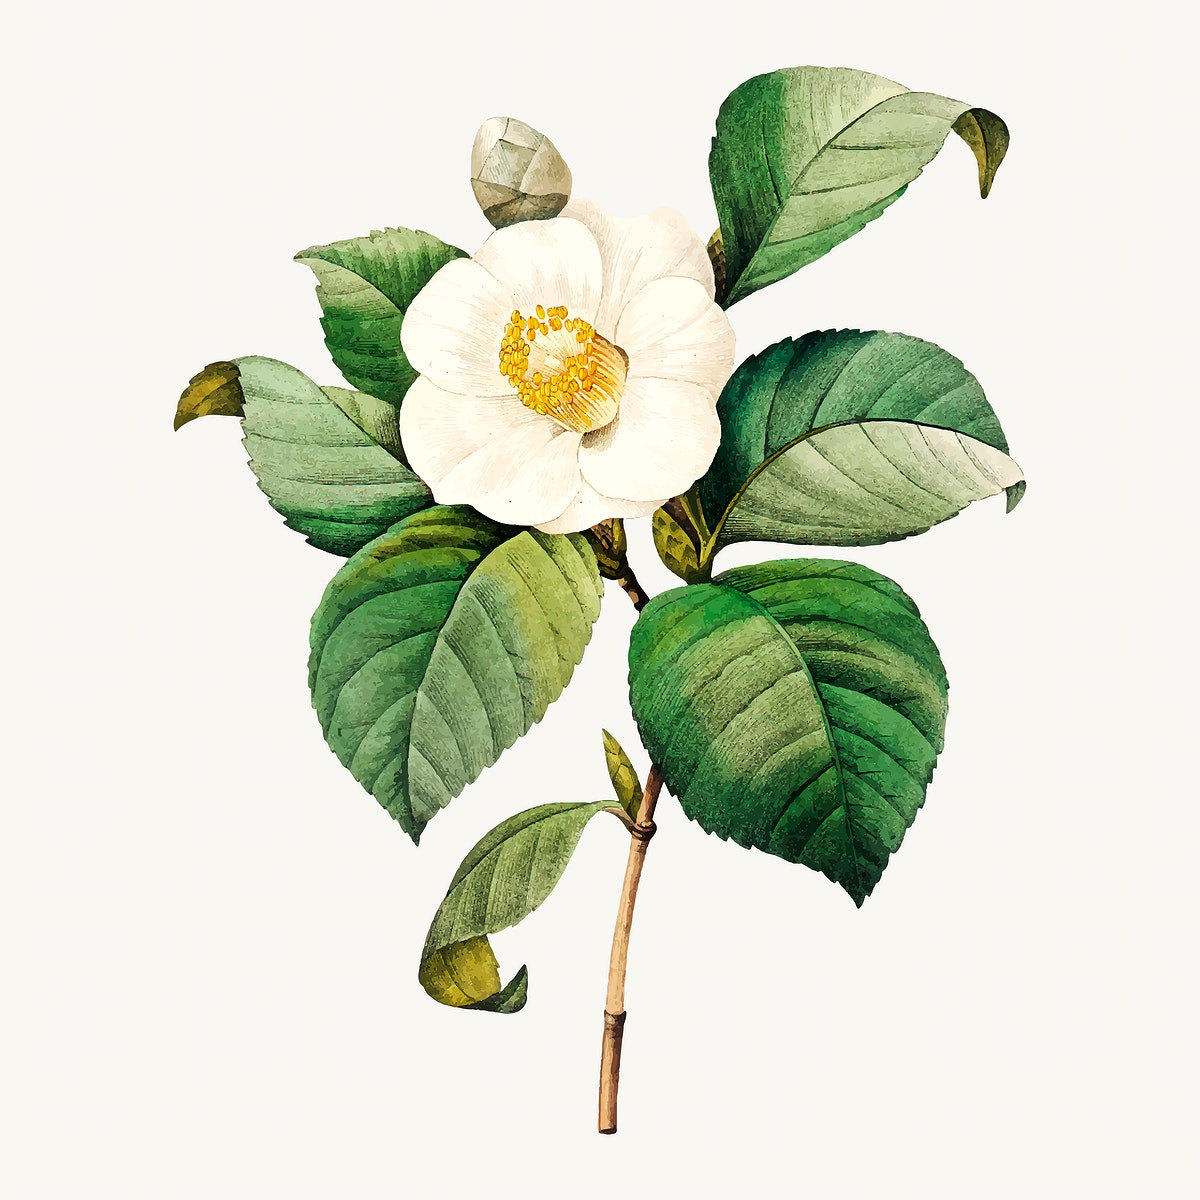 White Japanese camellia flower vector, remixed from artworks by Pierre-Joseph Redouté